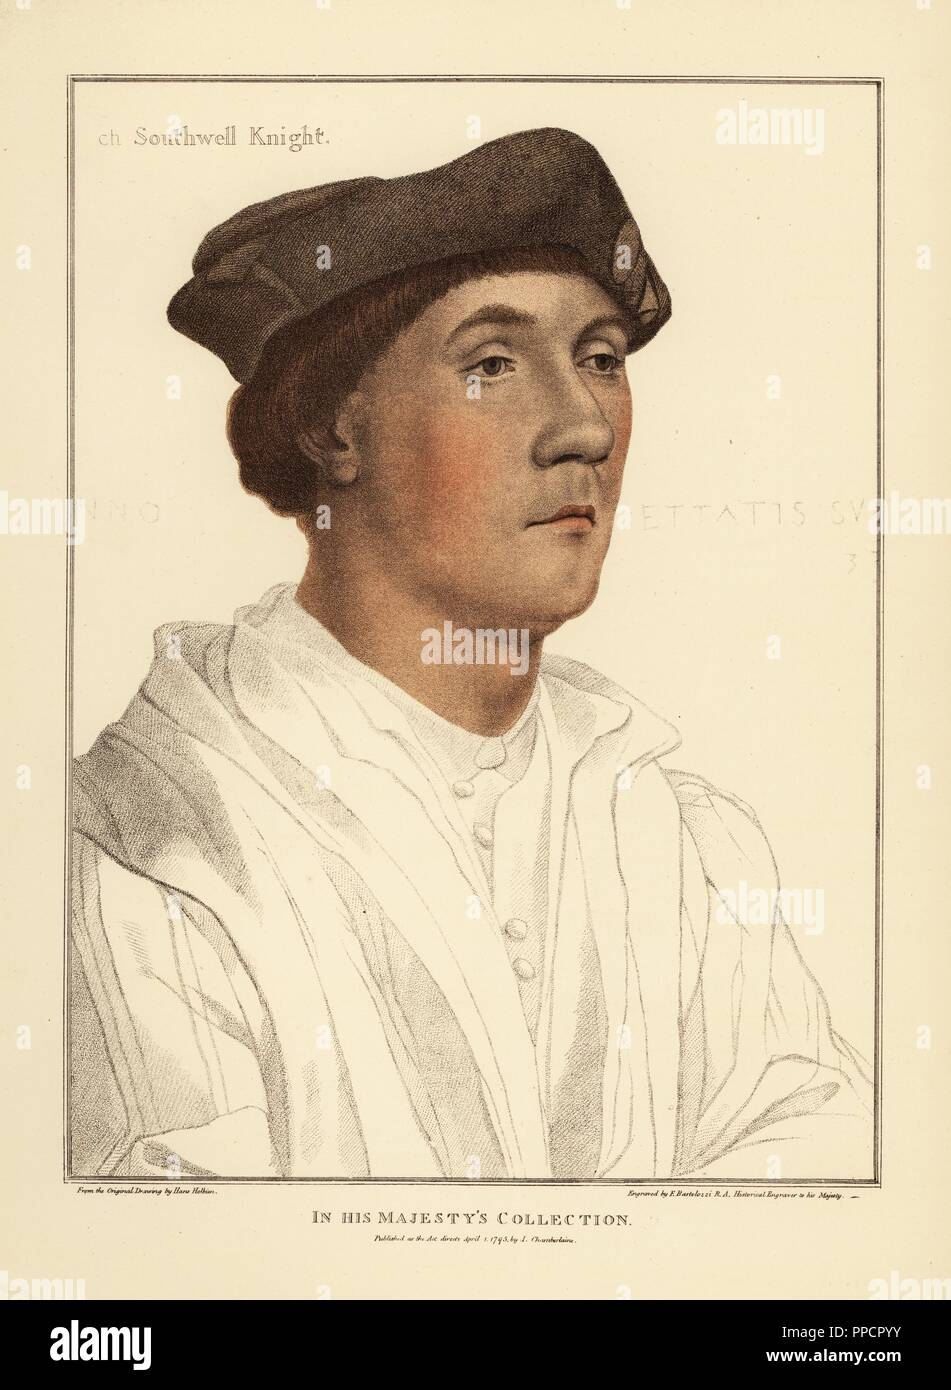 Sir Richard Southwell (c.1502- 1564), English Privy Councillor. Handcoloured copperplate engraving by Francis Bartolozzi after Hans Holbein from Facsimiles of Original Drawings by Hans Holbein, Hamilton, Adams, London, 1884. - Stock Image